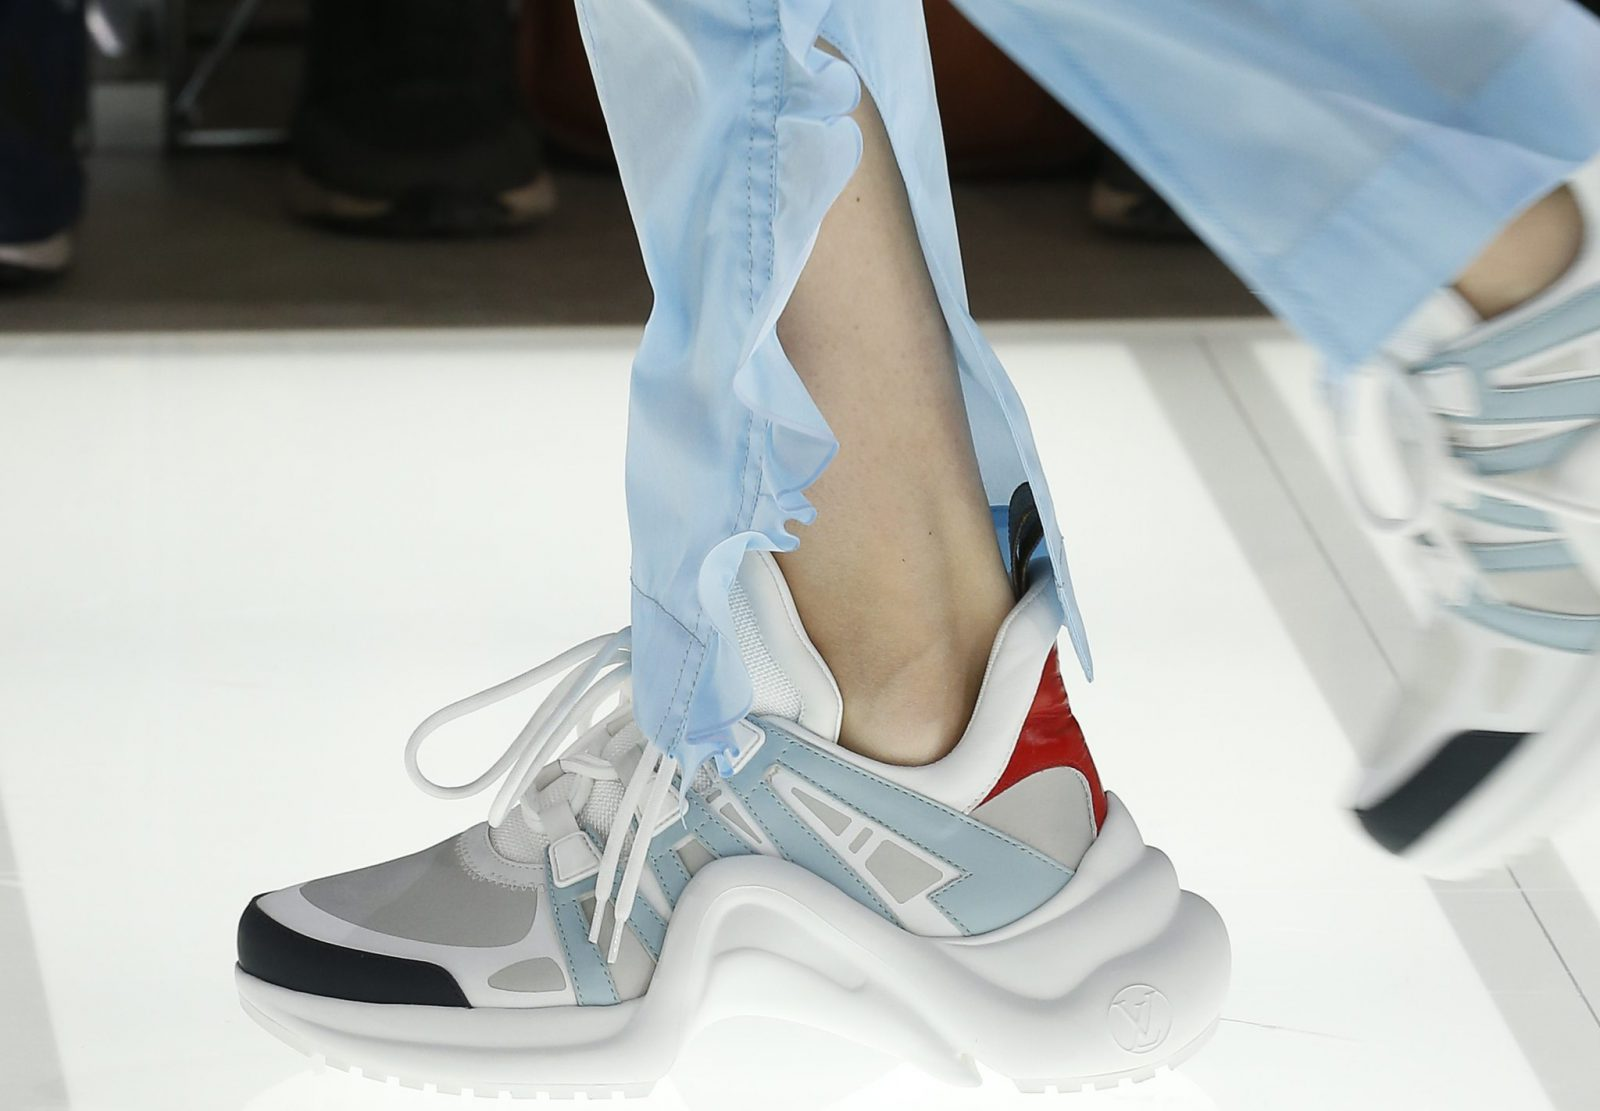 Louis Vuitton's extremely ugly sneakers